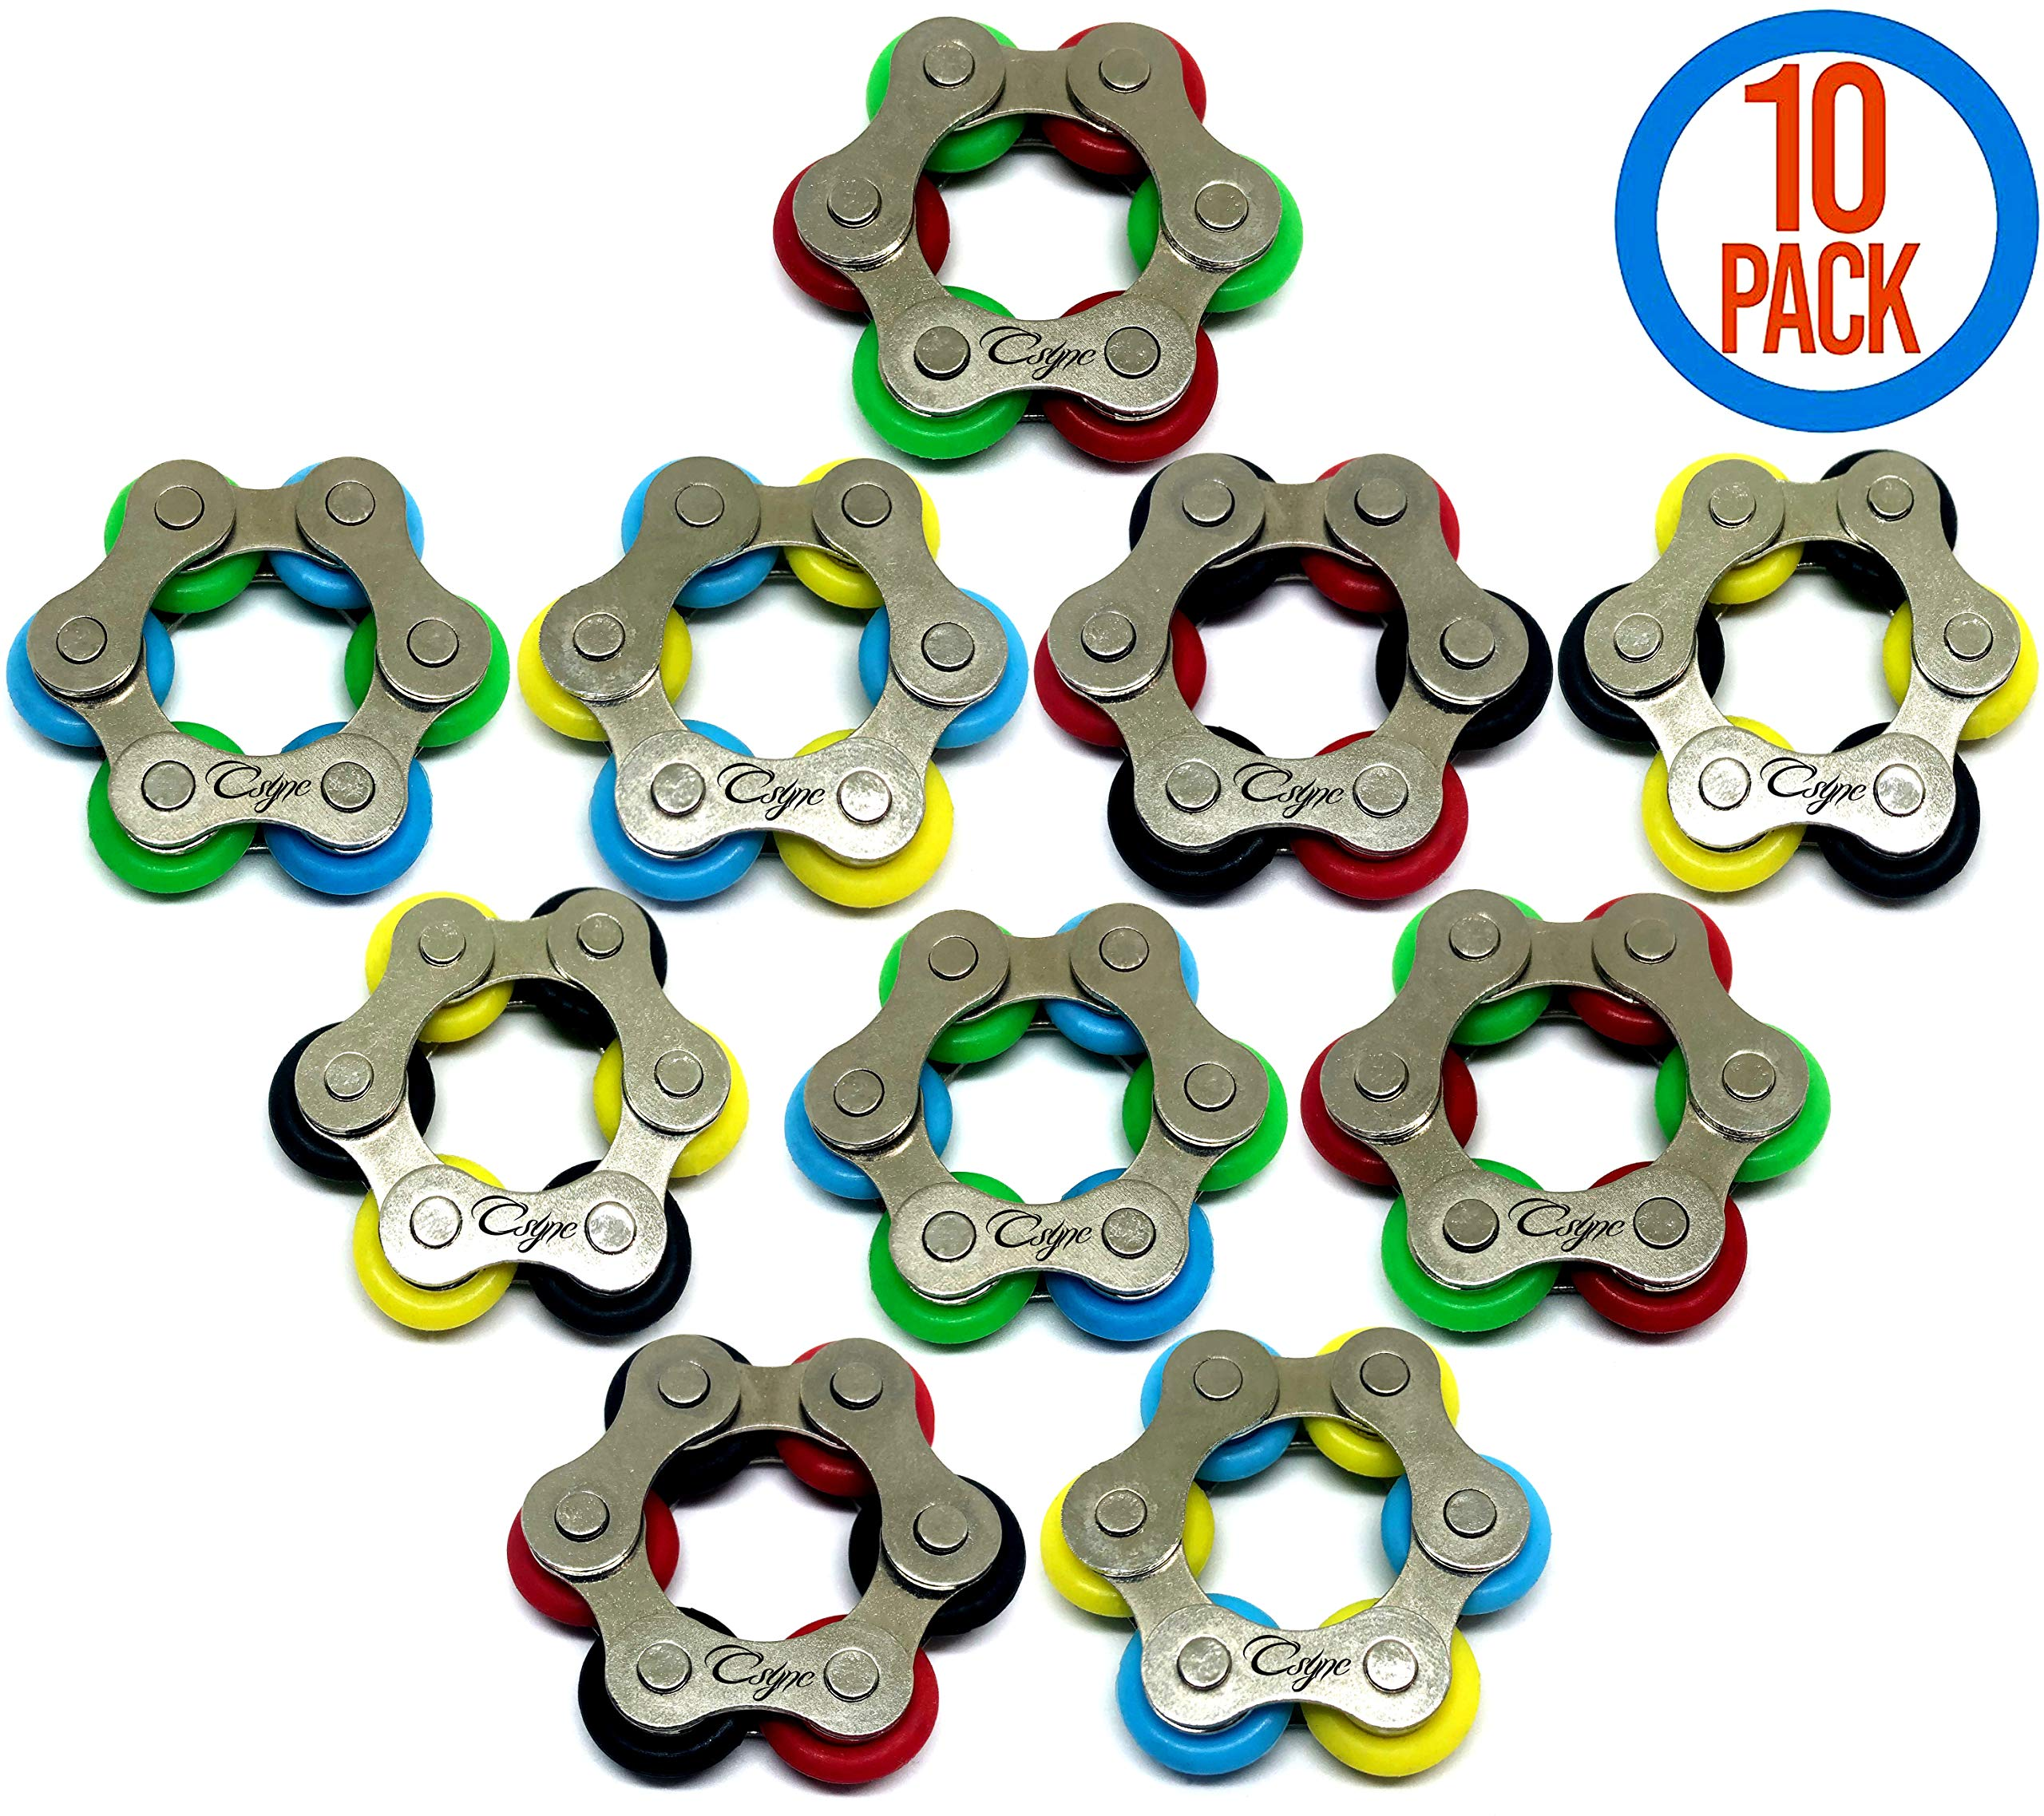 CsyncDirect Roller Chain Fidget Toy - Stress Relief Perfect for ADHD, ADD, Anxiety in Classroom, Office, School, Work for Students, Kids or Adults Stocking Stuffers Gifts for Children Bulk (10 Pack) by CsyncDirect